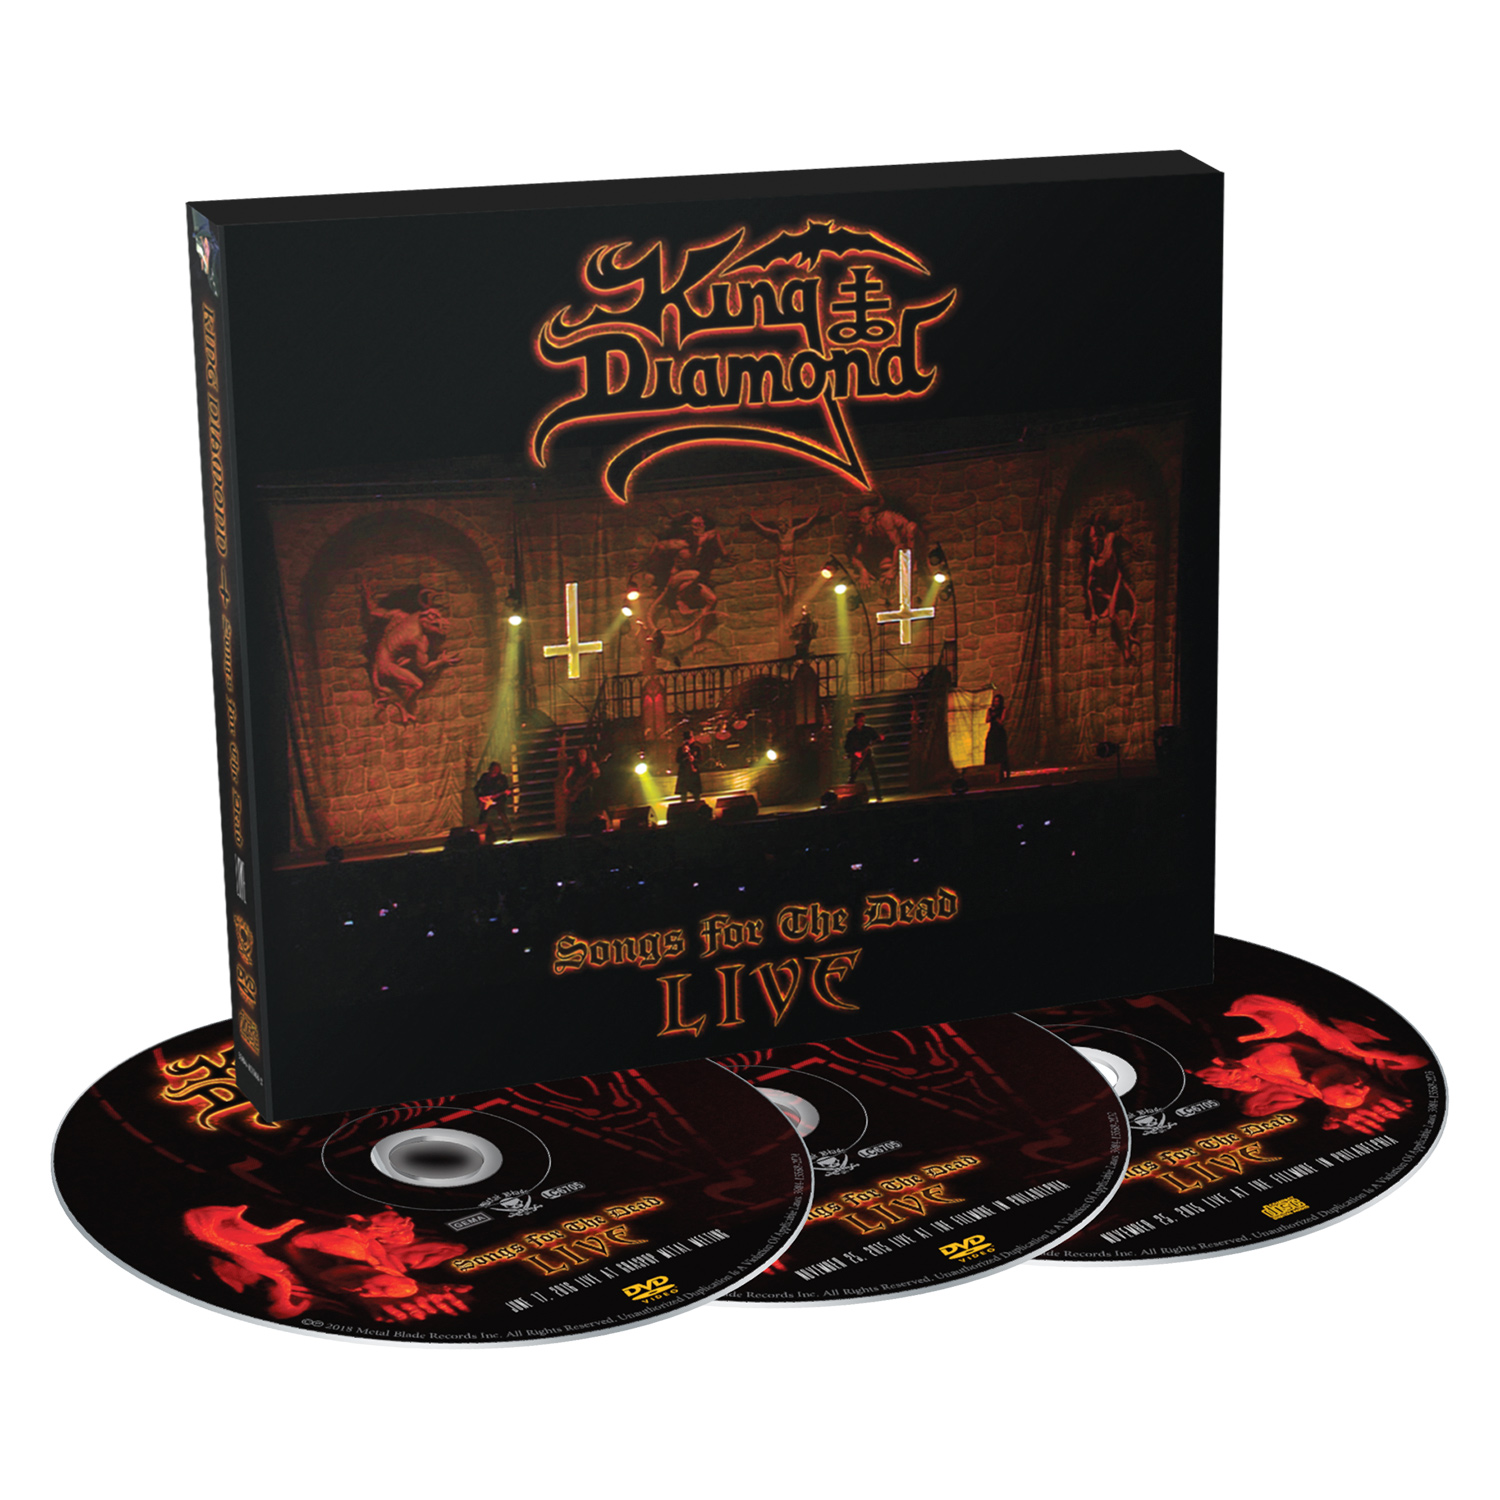 Songs for the Dead Live - DVD Bundle